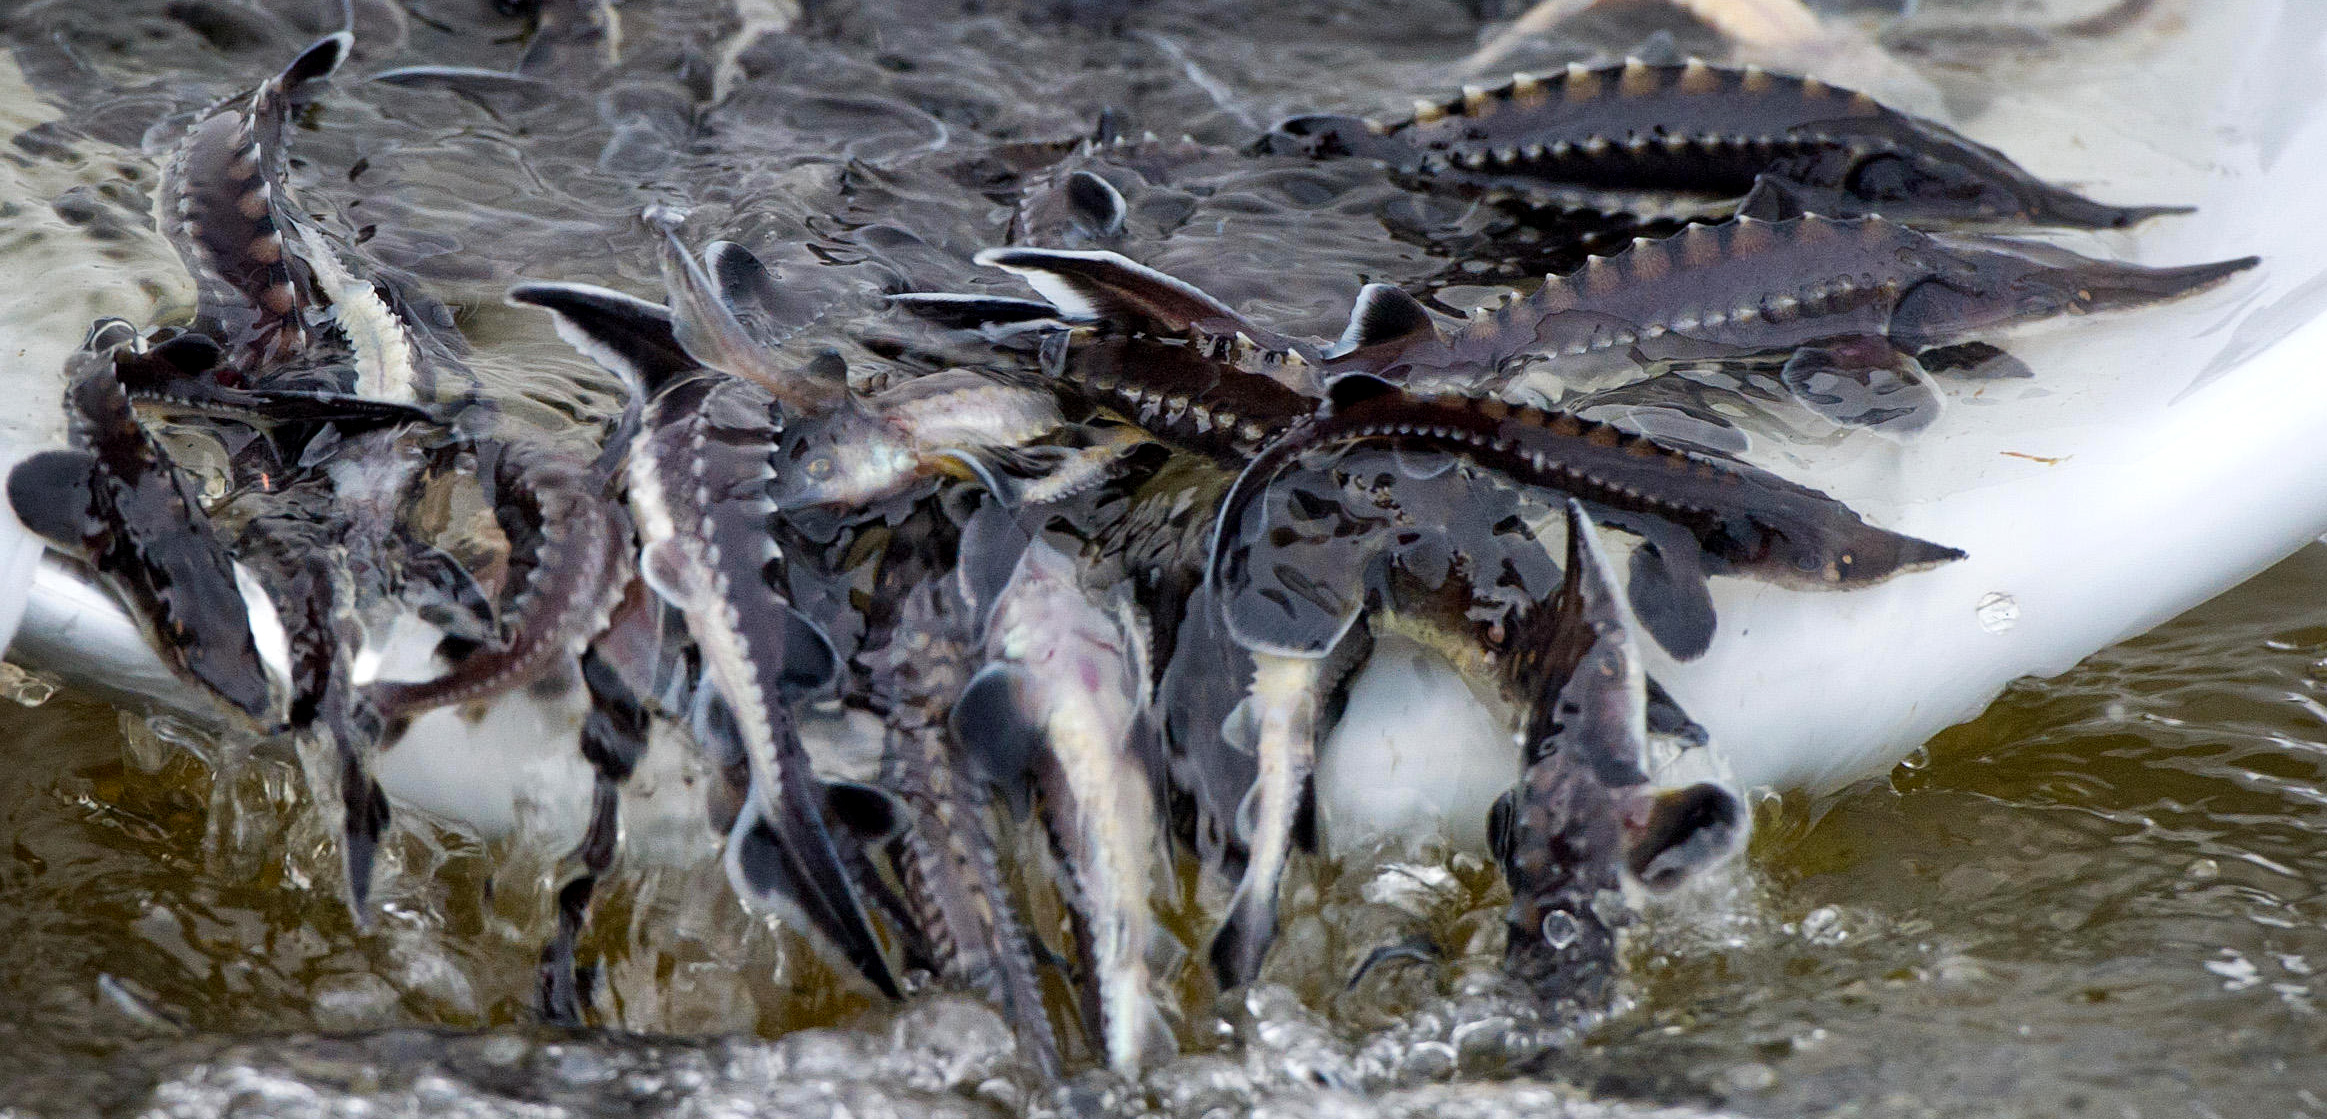 Small sturgeon are released into the Oder River near Hohesaaten, Germany